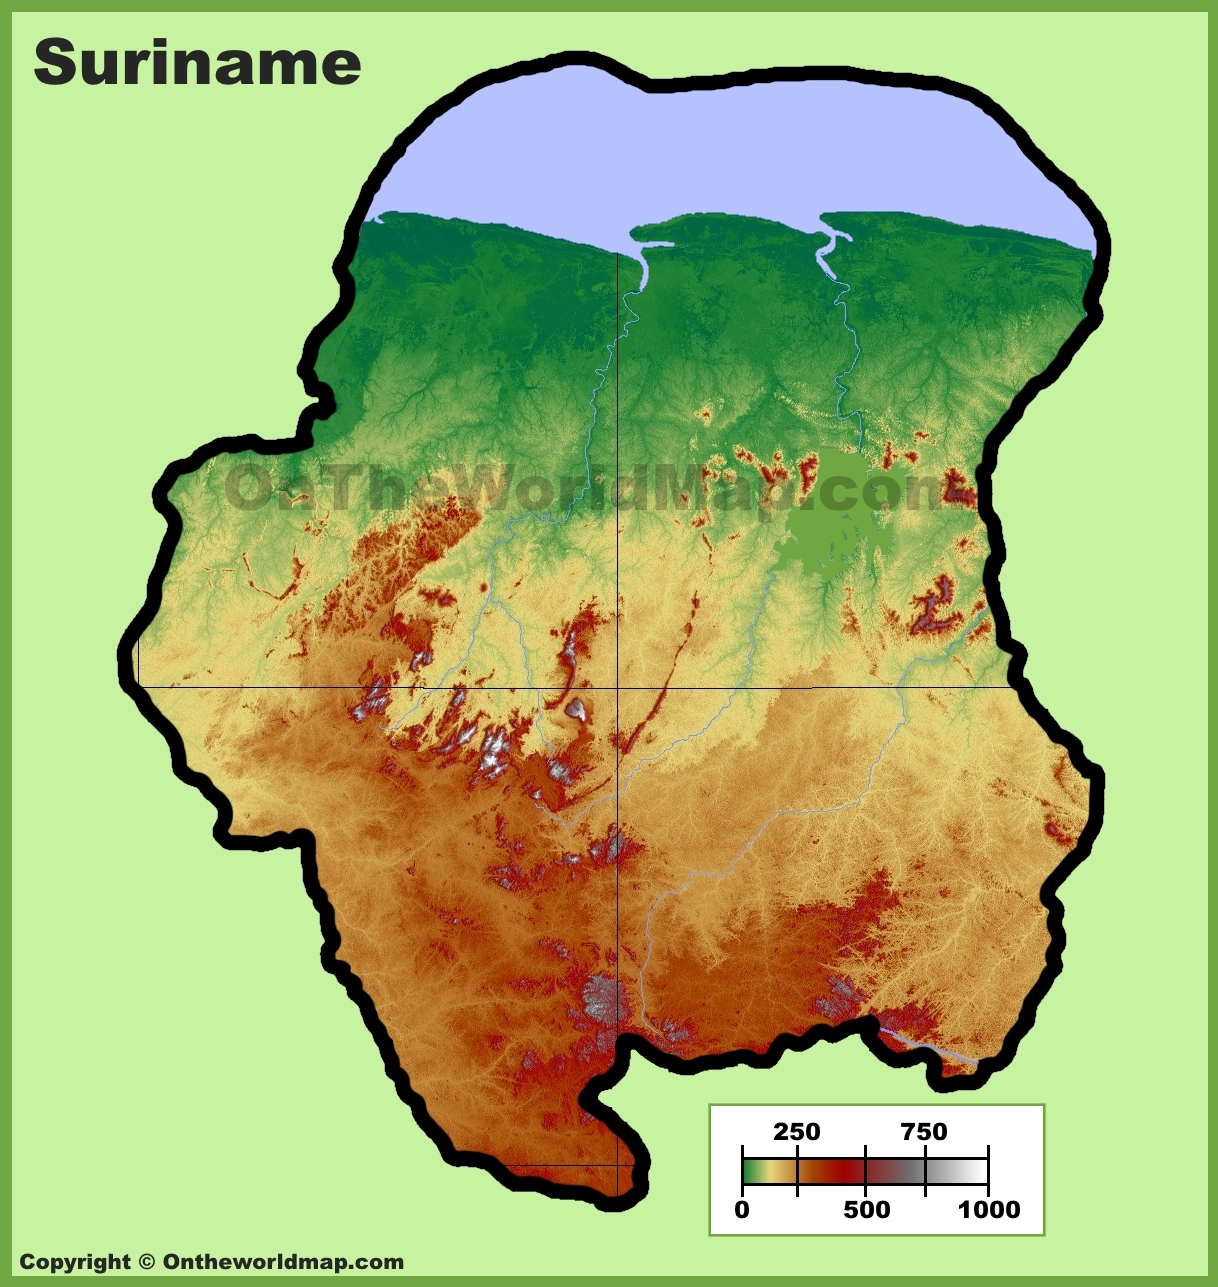 Suriname Physical Map - Where is suriname on the map